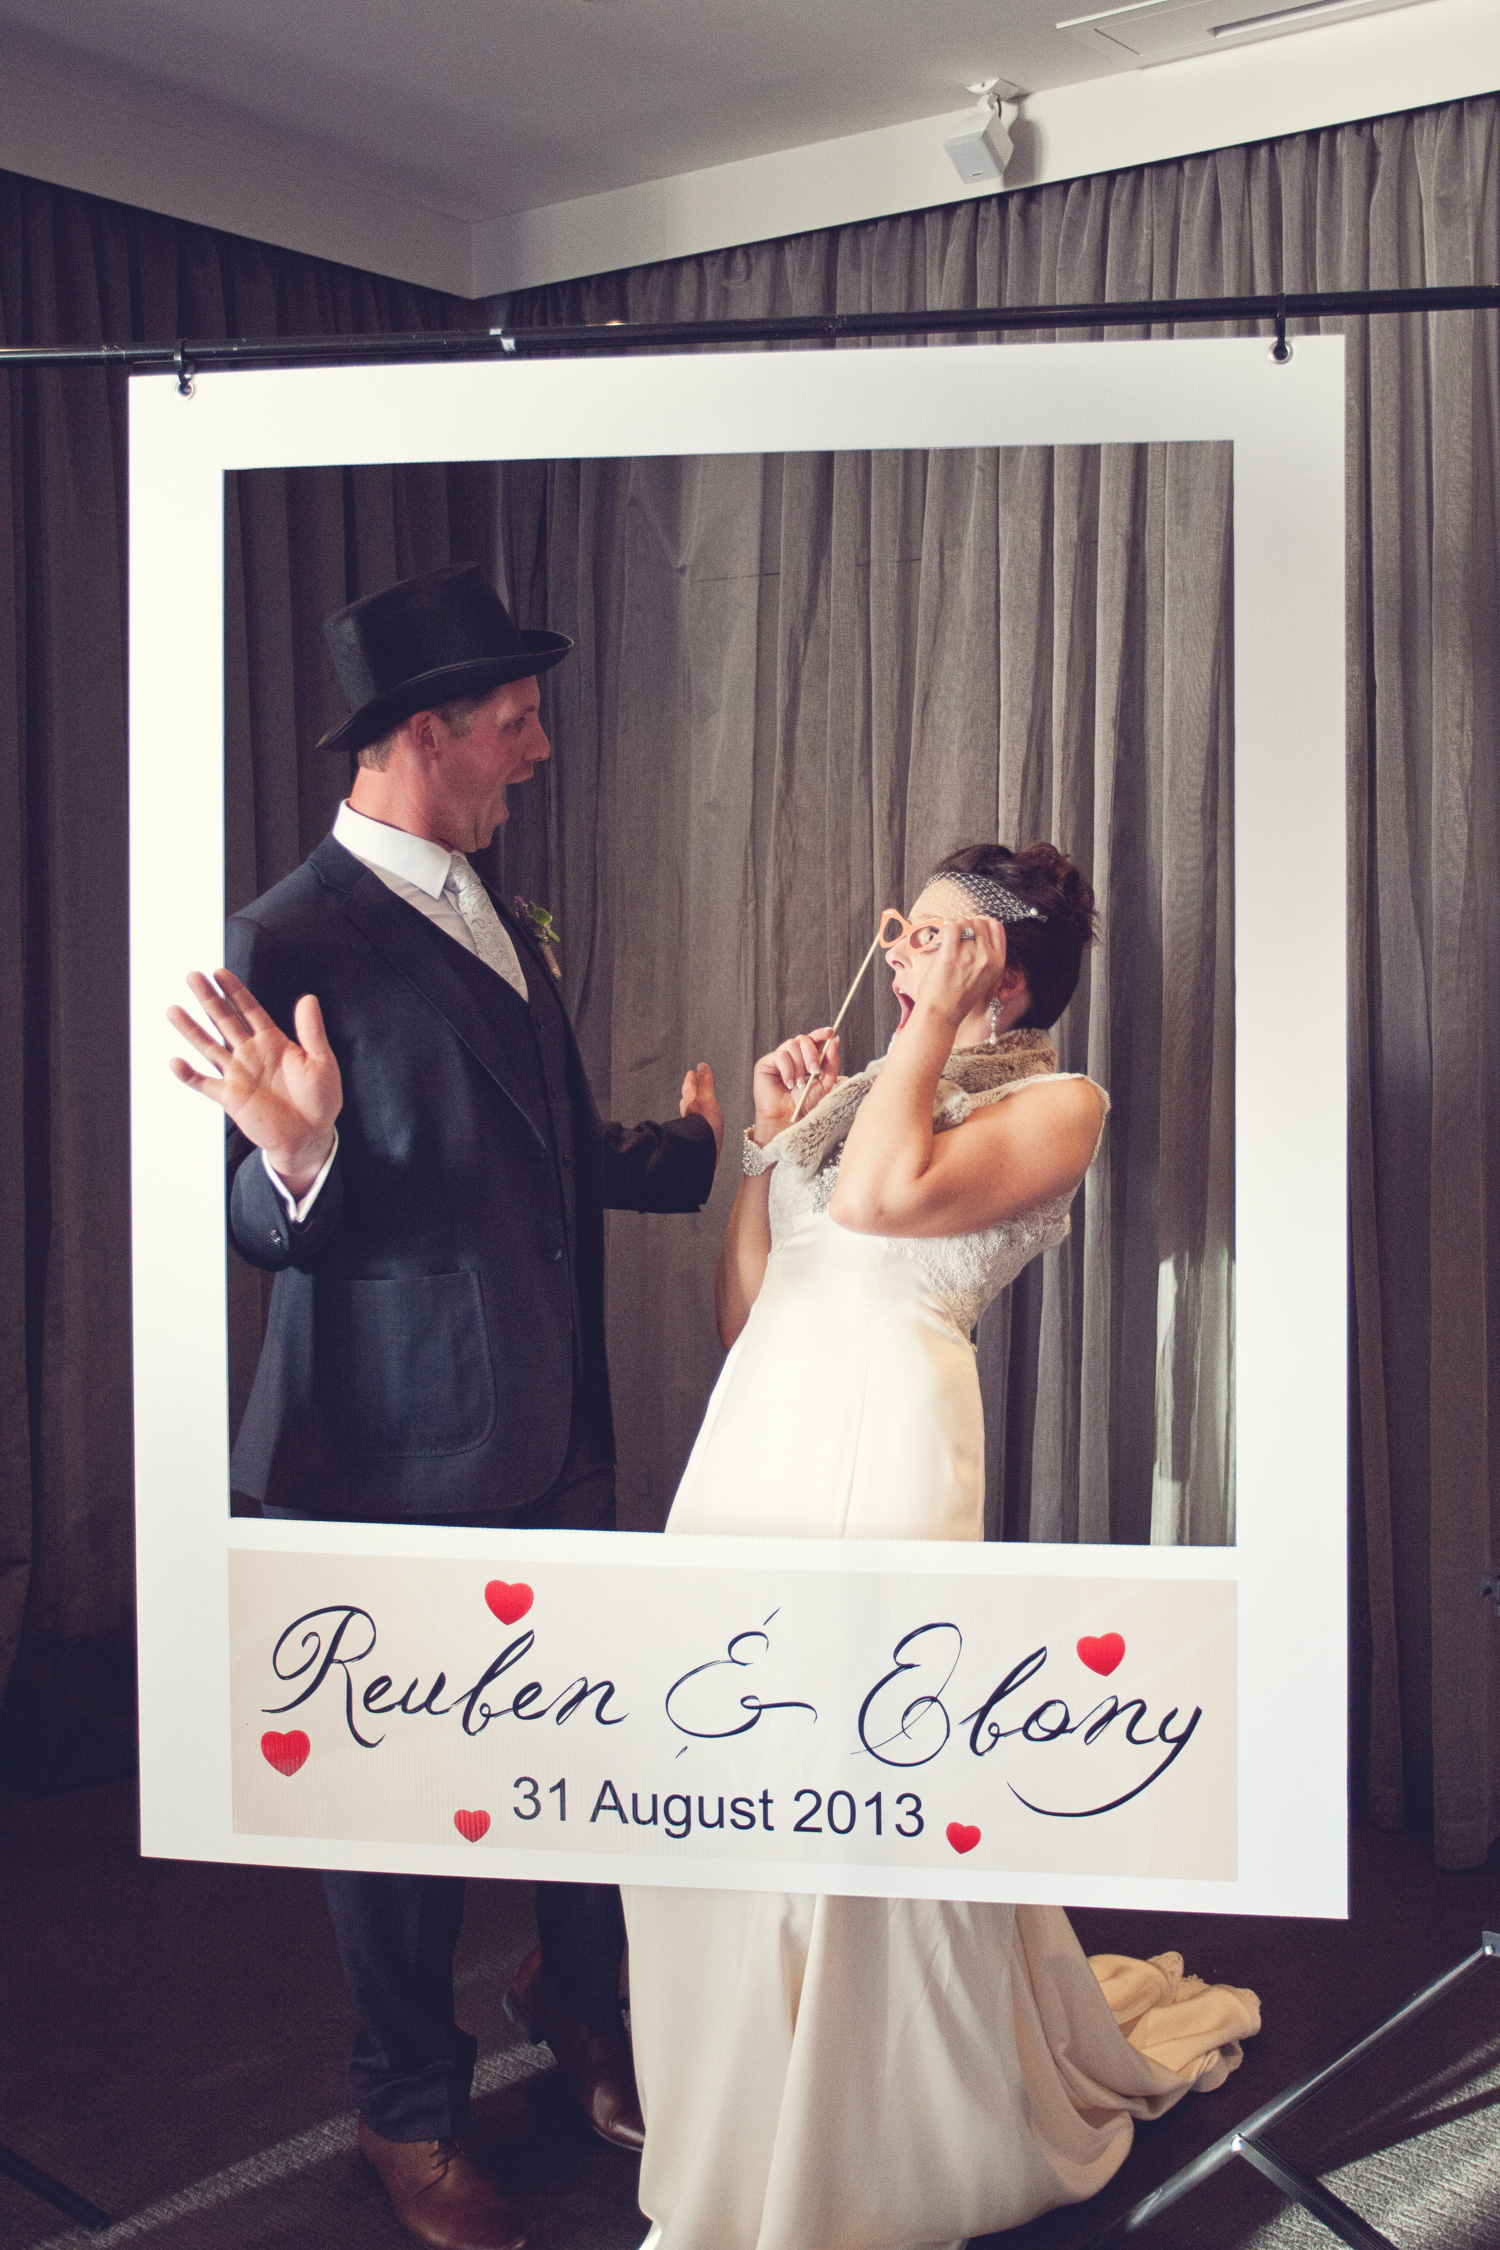 Ebony_Reuben_Vintage-Wedding_029